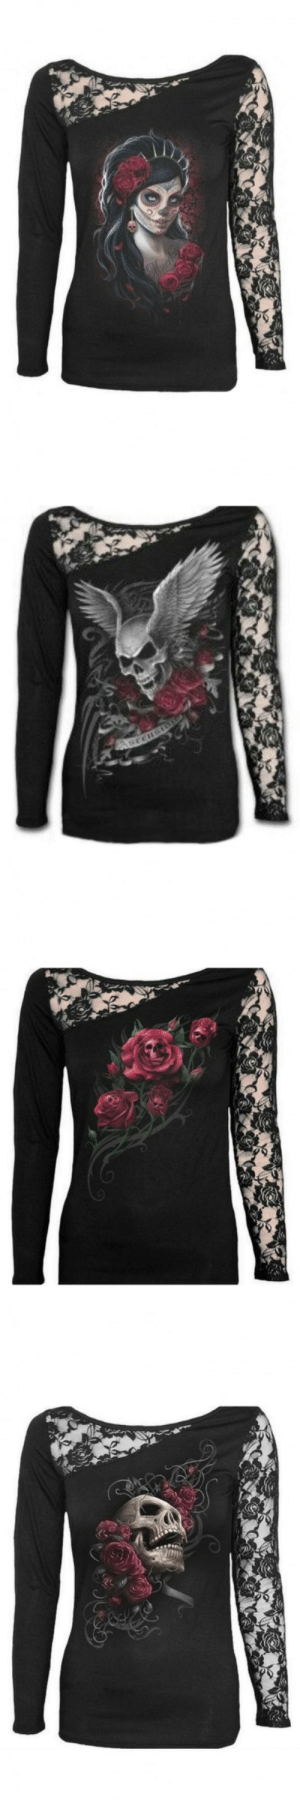 awesomage: Floral Long Sleeve     Floral Long SleeveFloral Long Sleeve     Floral Long Sleeve   Perfect clothing for Halloween! : awesomage: Floral Long Sleeve     Floral Long SleeveFloral Long Sleeve     Floral Long Sleeve   Perfect clothing for Halloween!